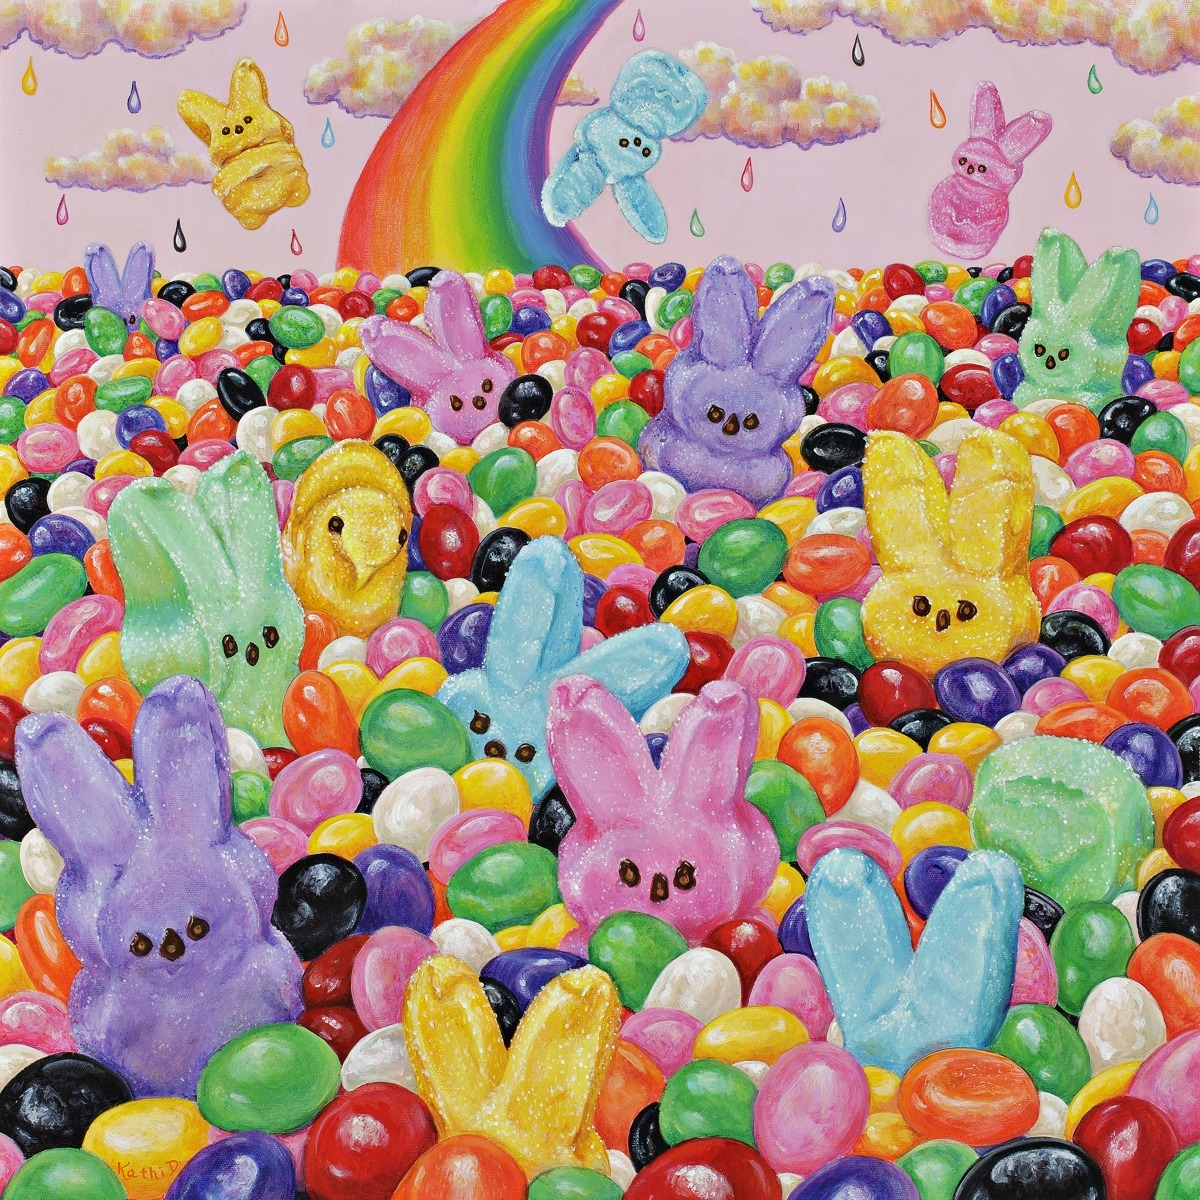 BUNNY BALL PIT by Kathi Dugan (large view)